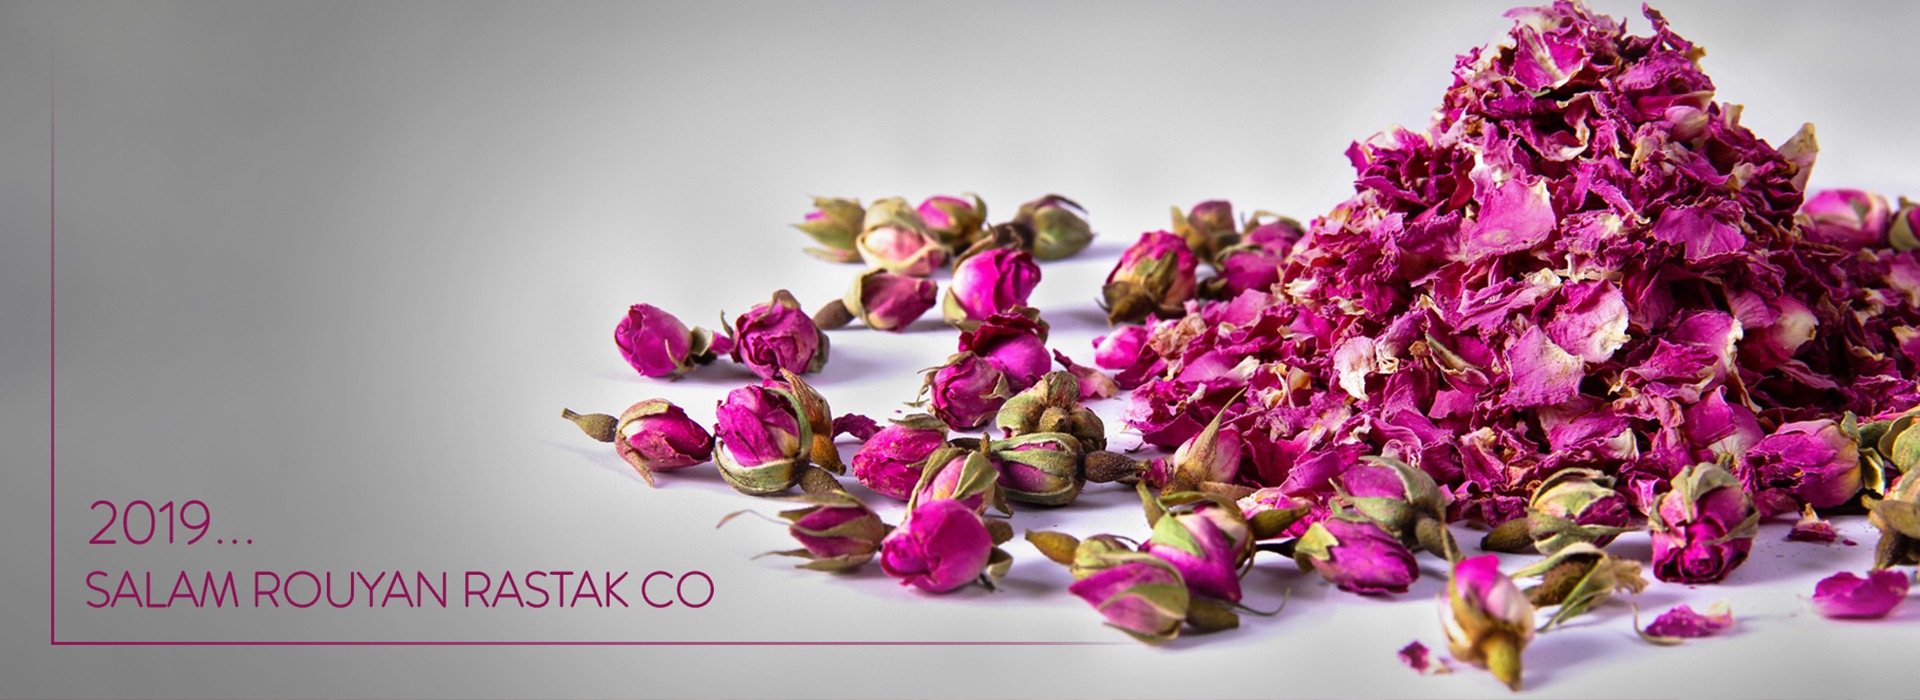 Azil Organic Rose Buds and Rose petals Distinctions